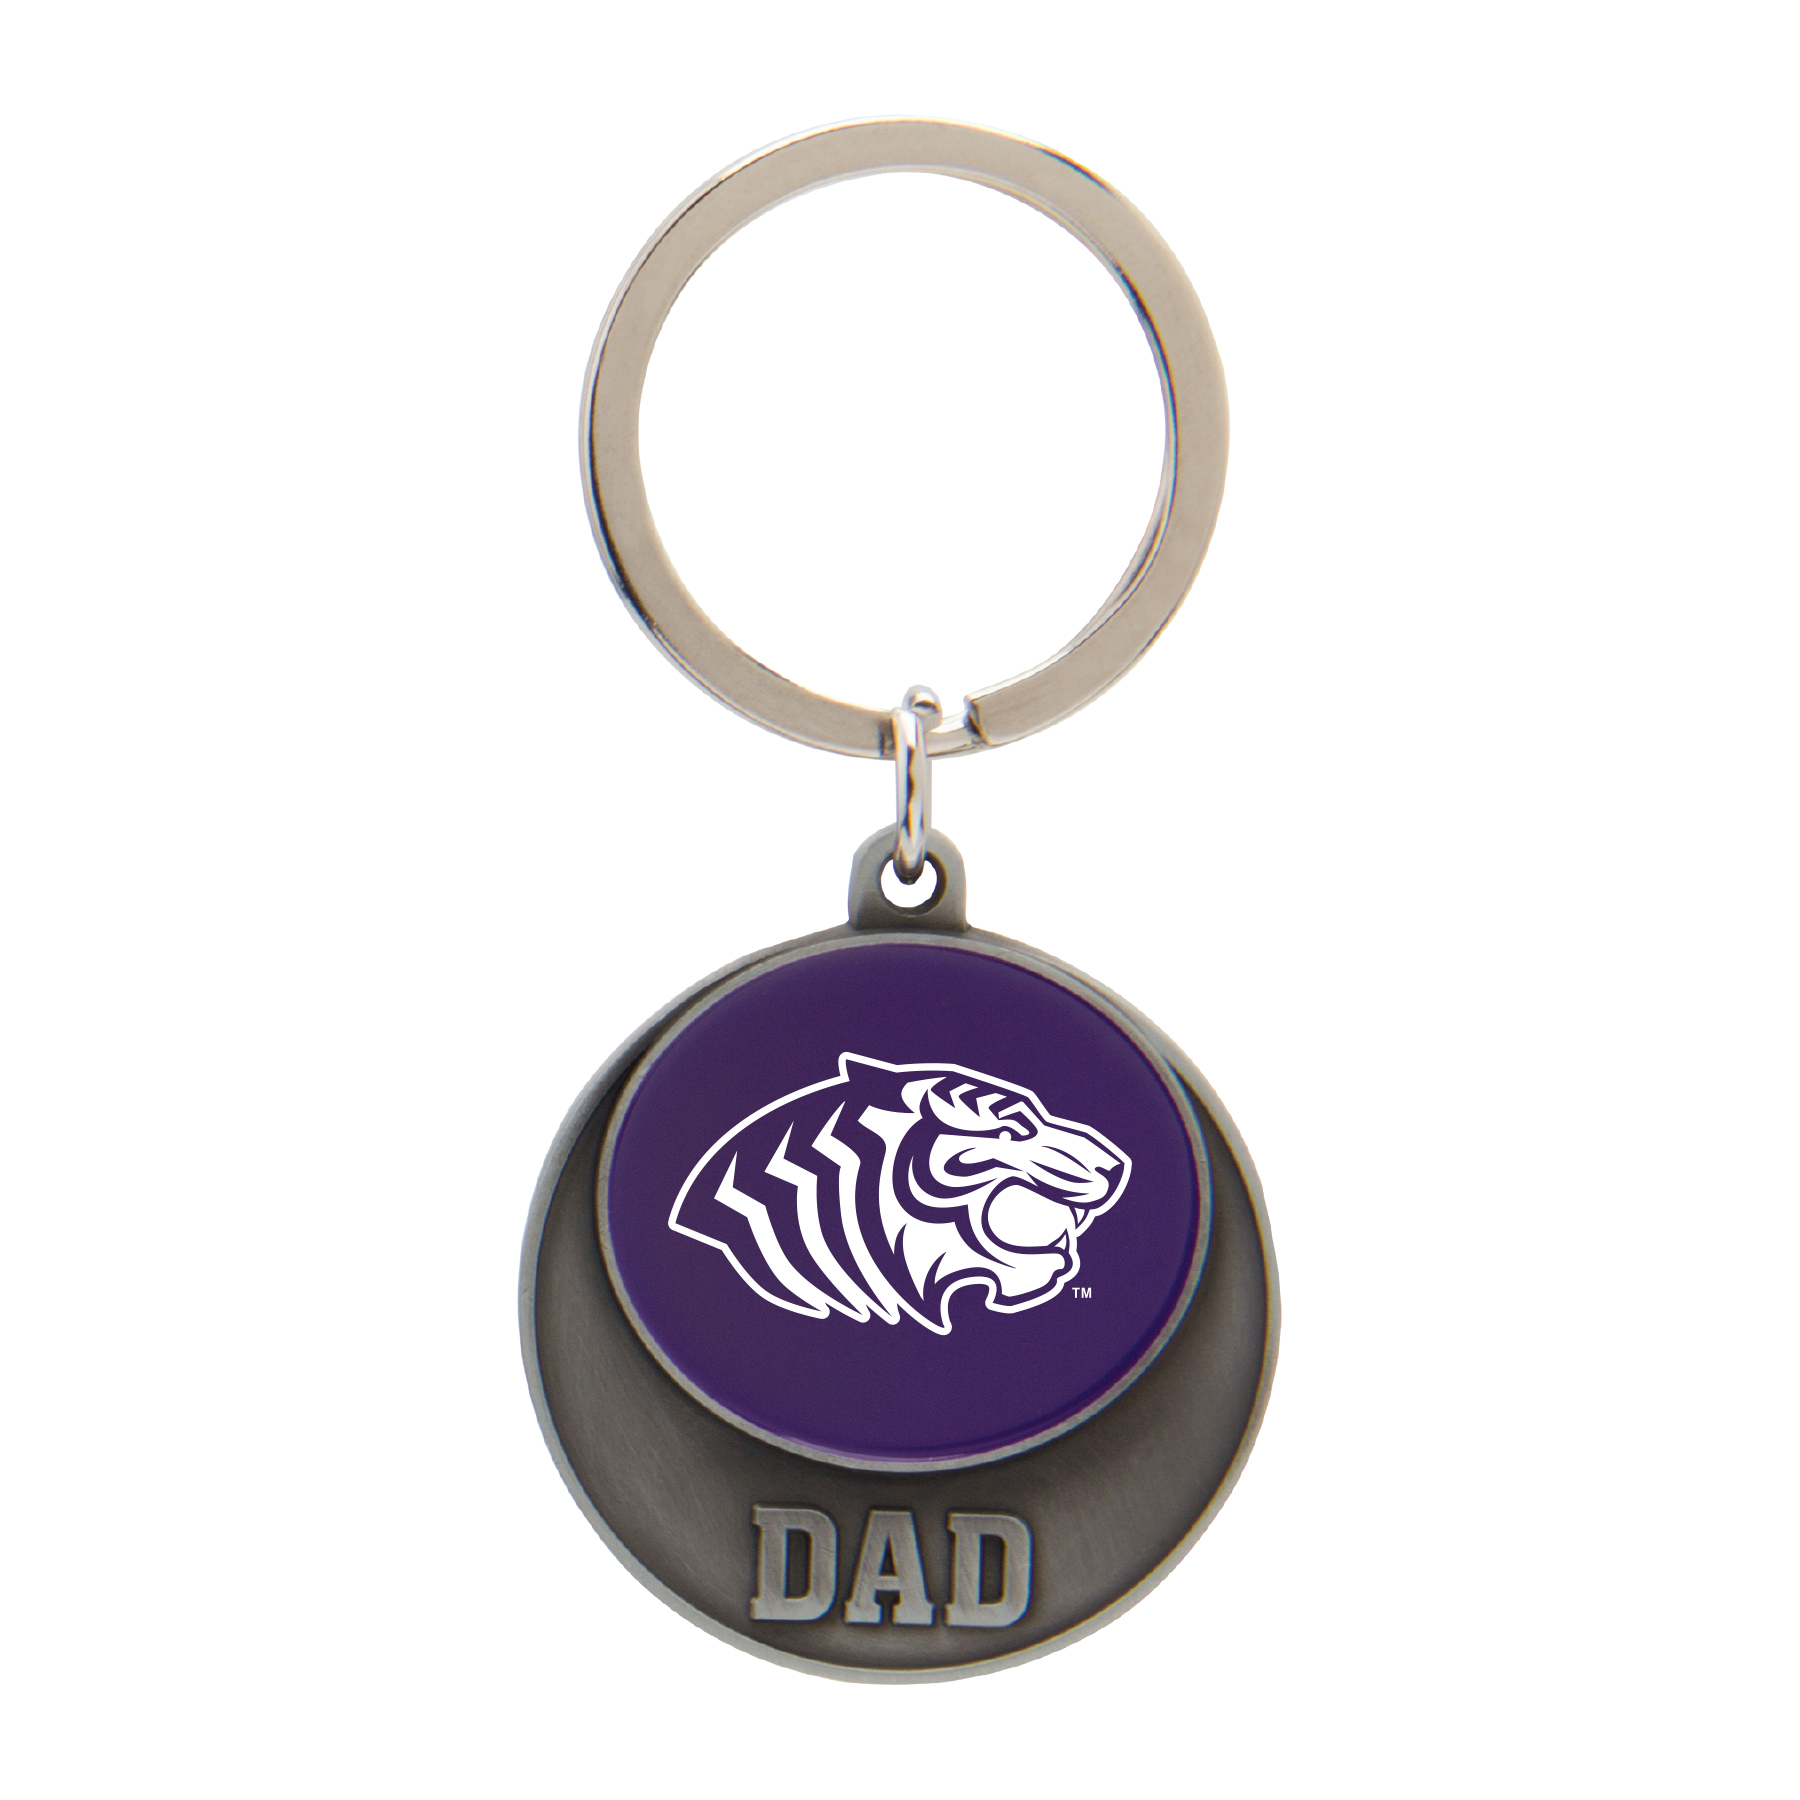 OUACHITA DAD KEYCHAIN